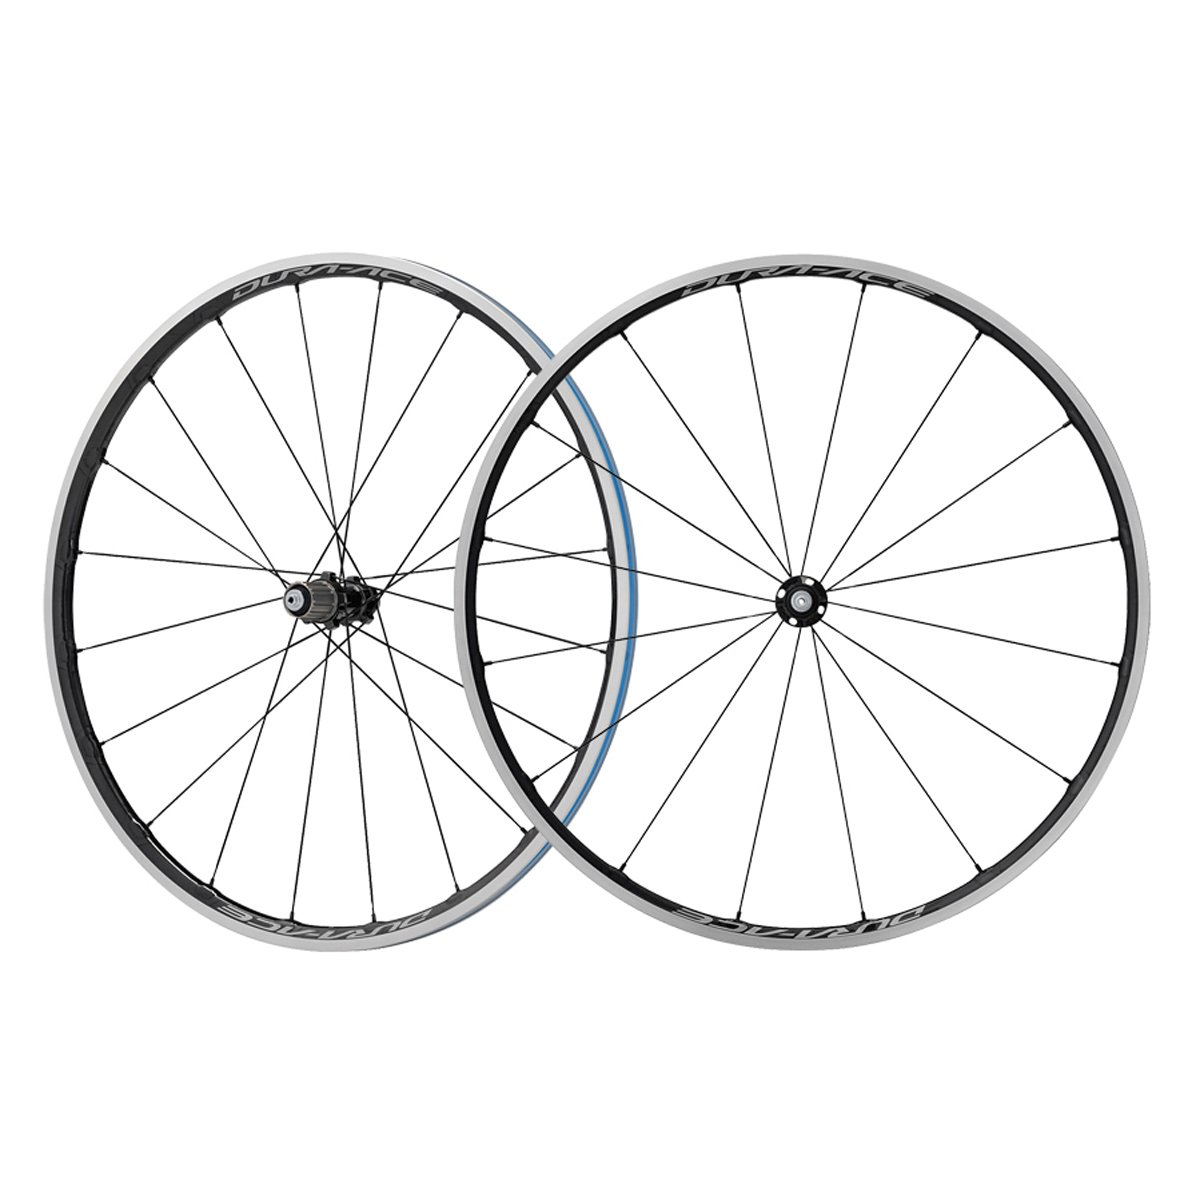 Shimano Dura-Ace WH-R9100-C24-CL | item_misc